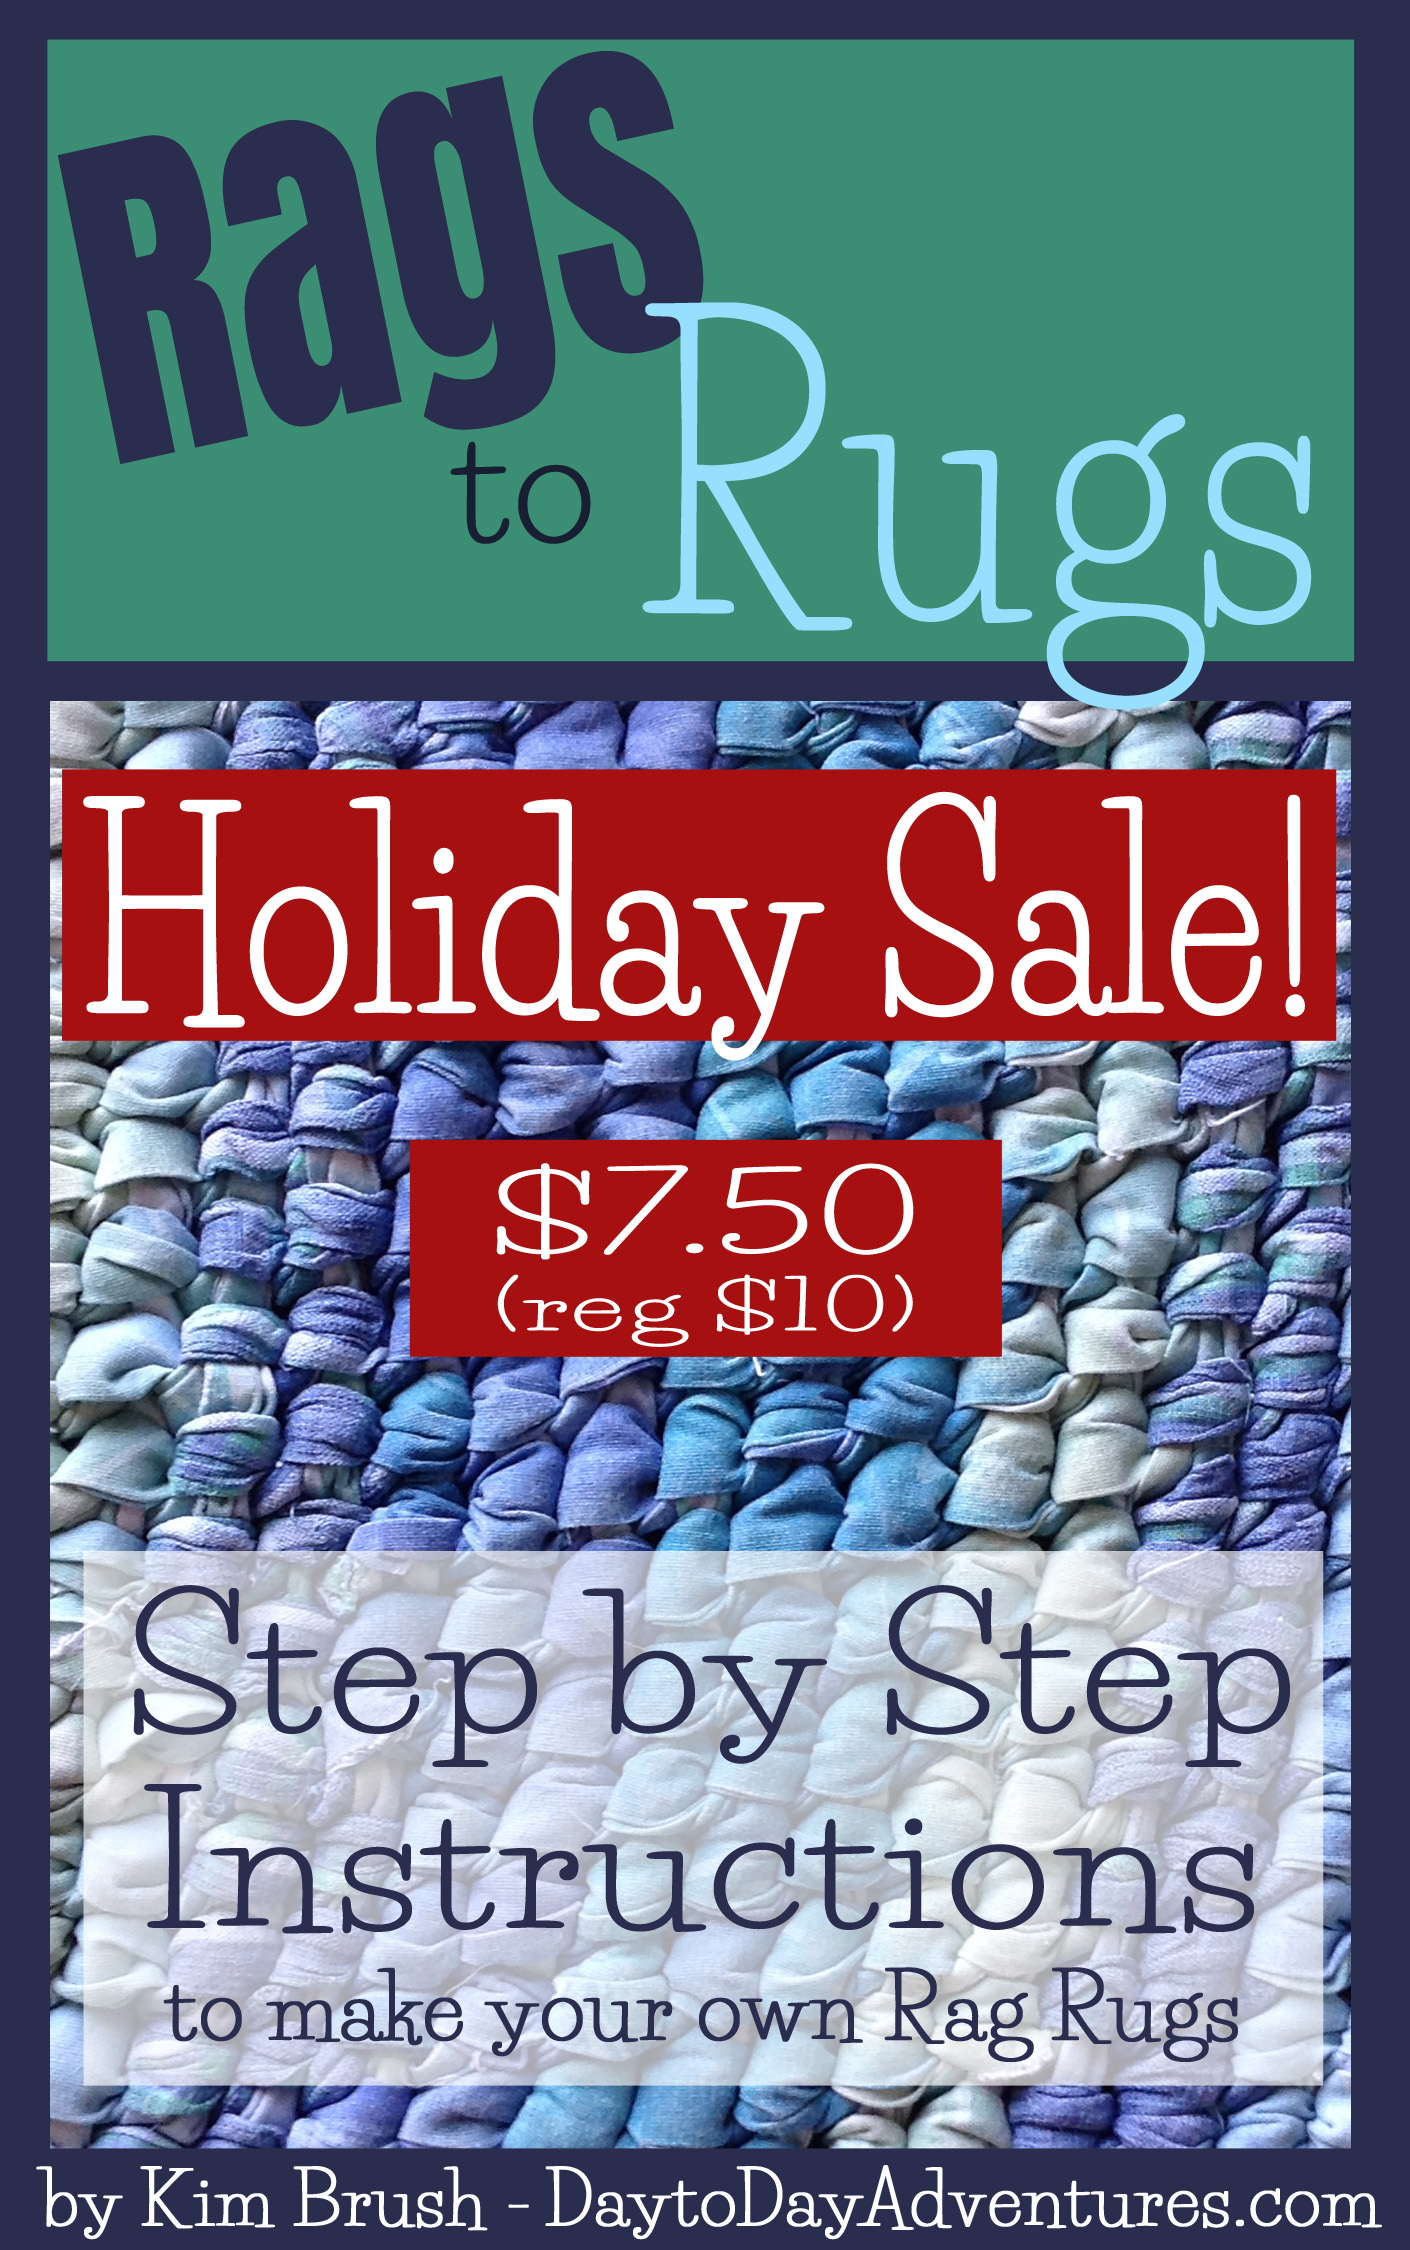 Ever wanted to make your own rag rug?  Now is the time!  Check out the eBook Rags to Rugs!  It's on sale!